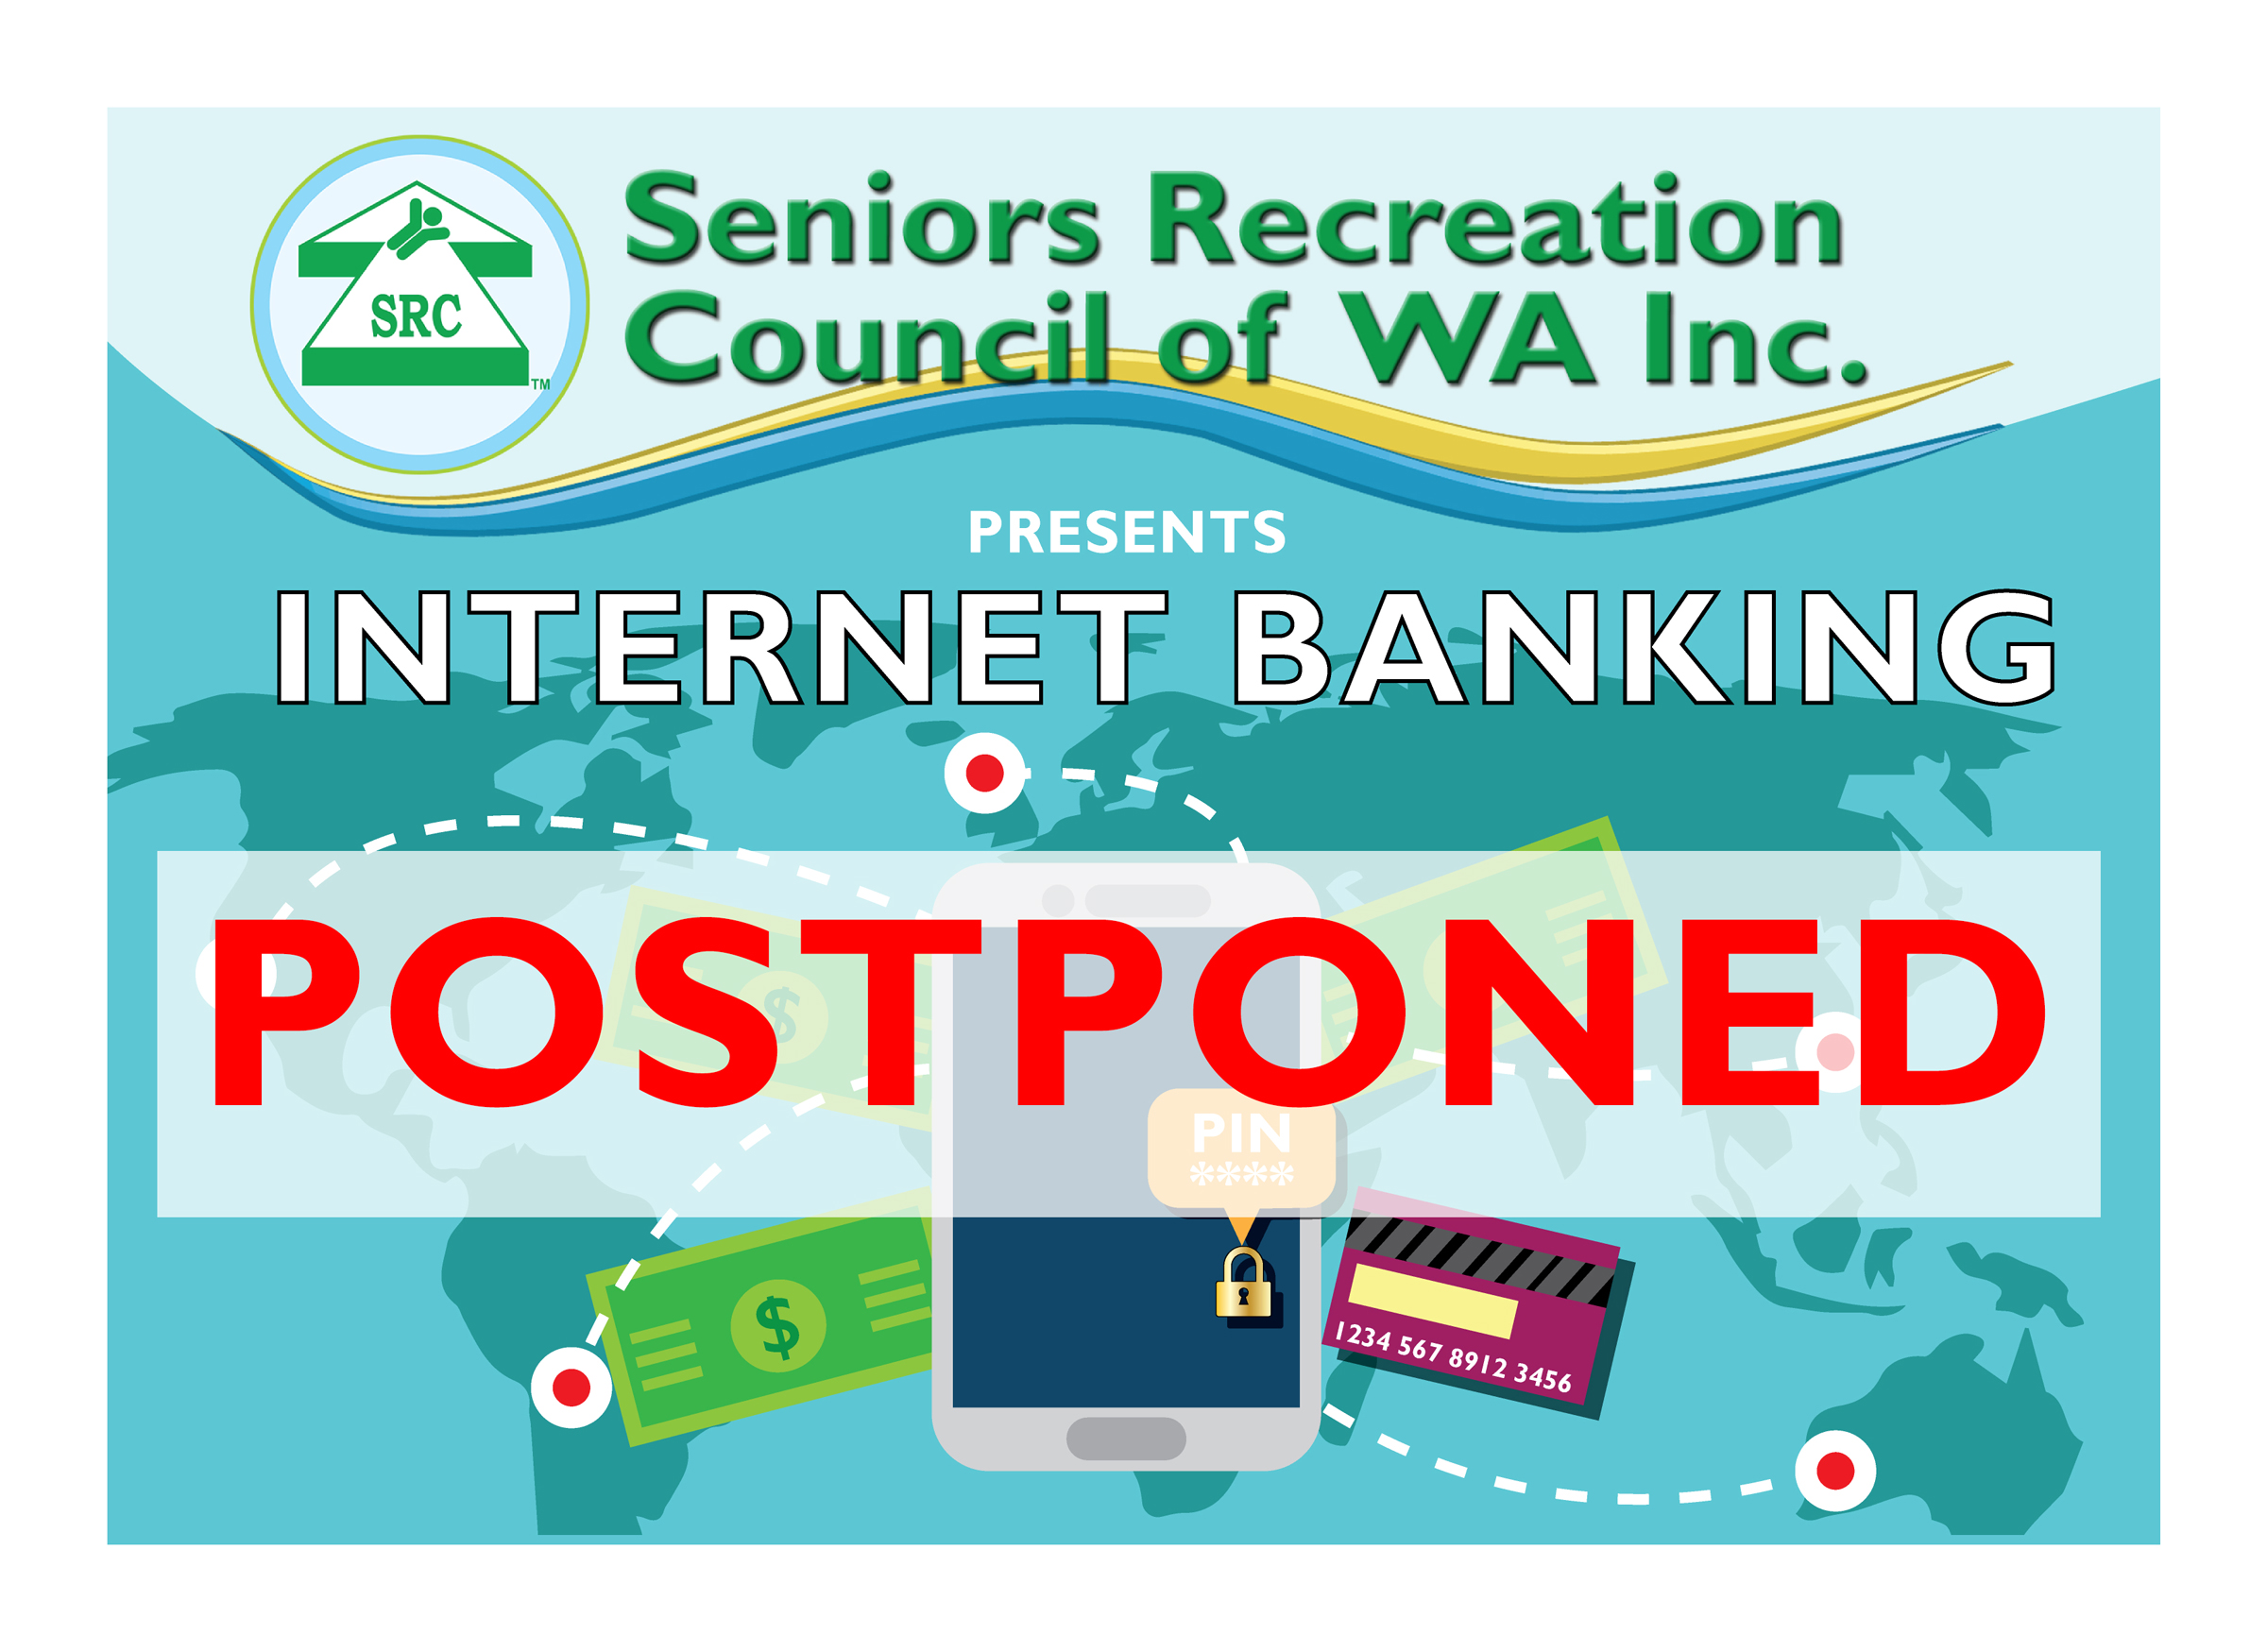 Internet Banking for Seniors Postponed